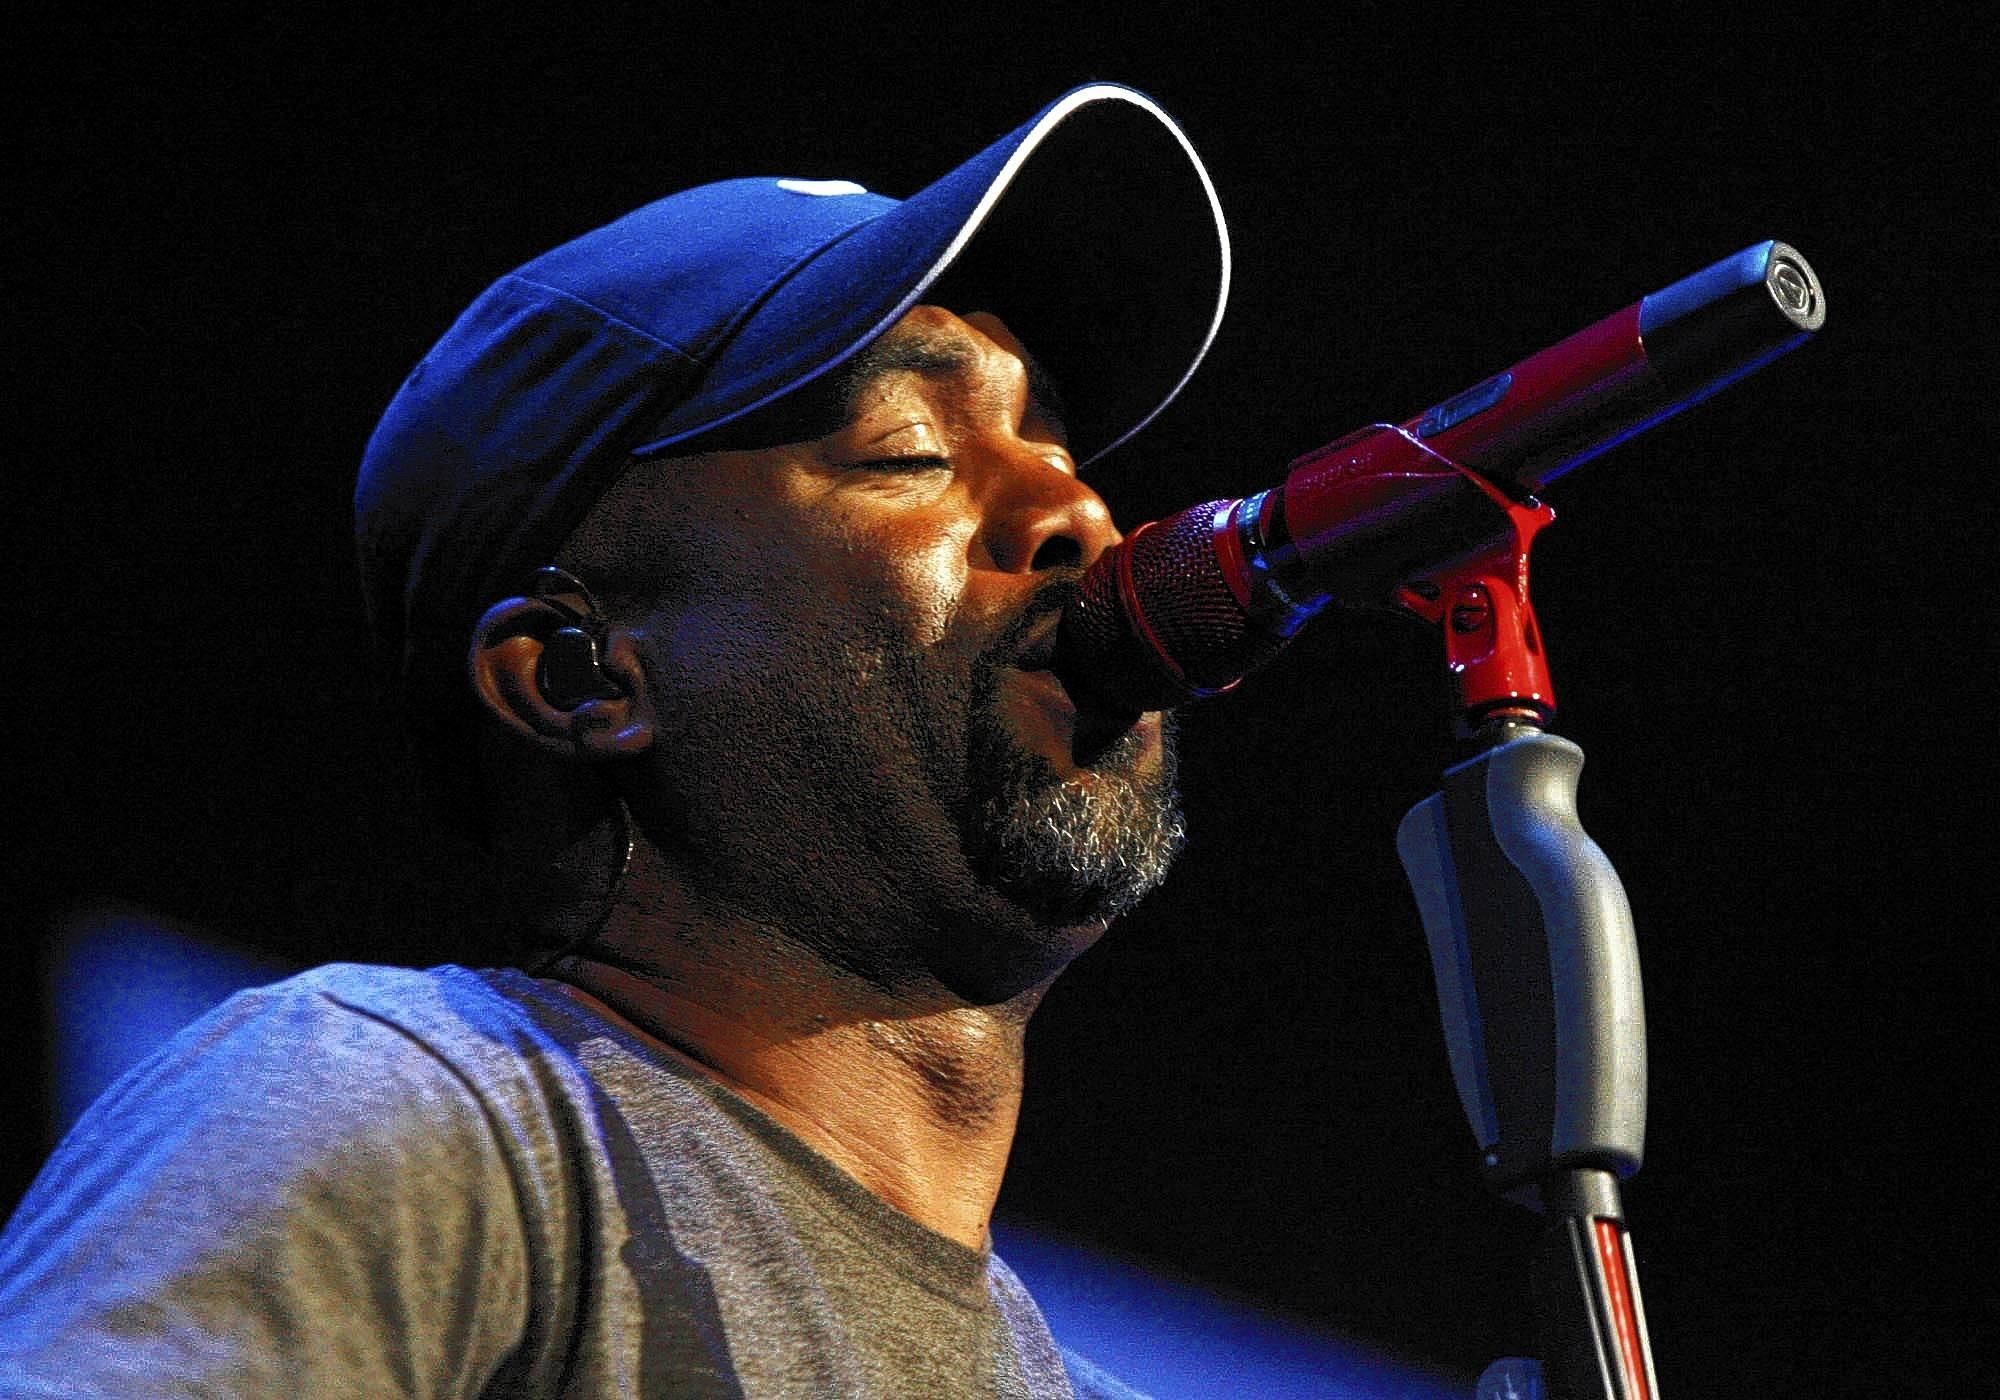 Darius Rucker will perform April 24 at CFE Arena in Orlando.